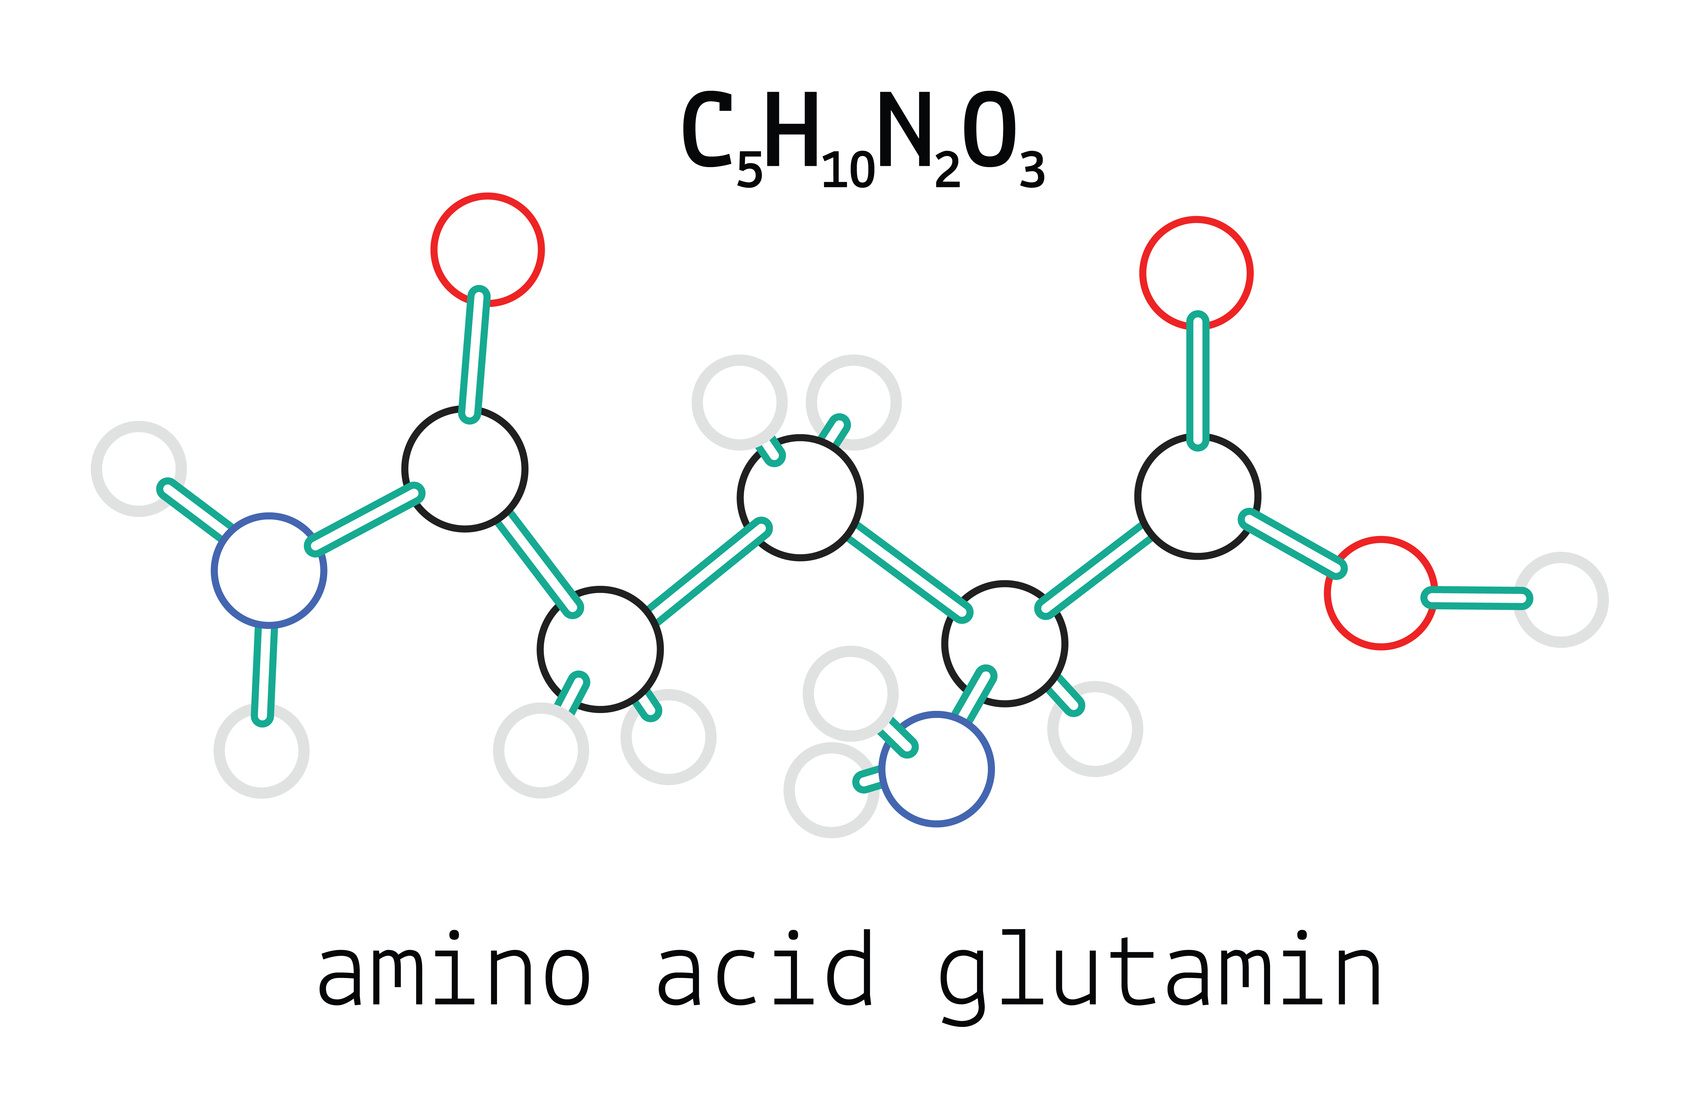 glutamine review the most abundant amino in the body